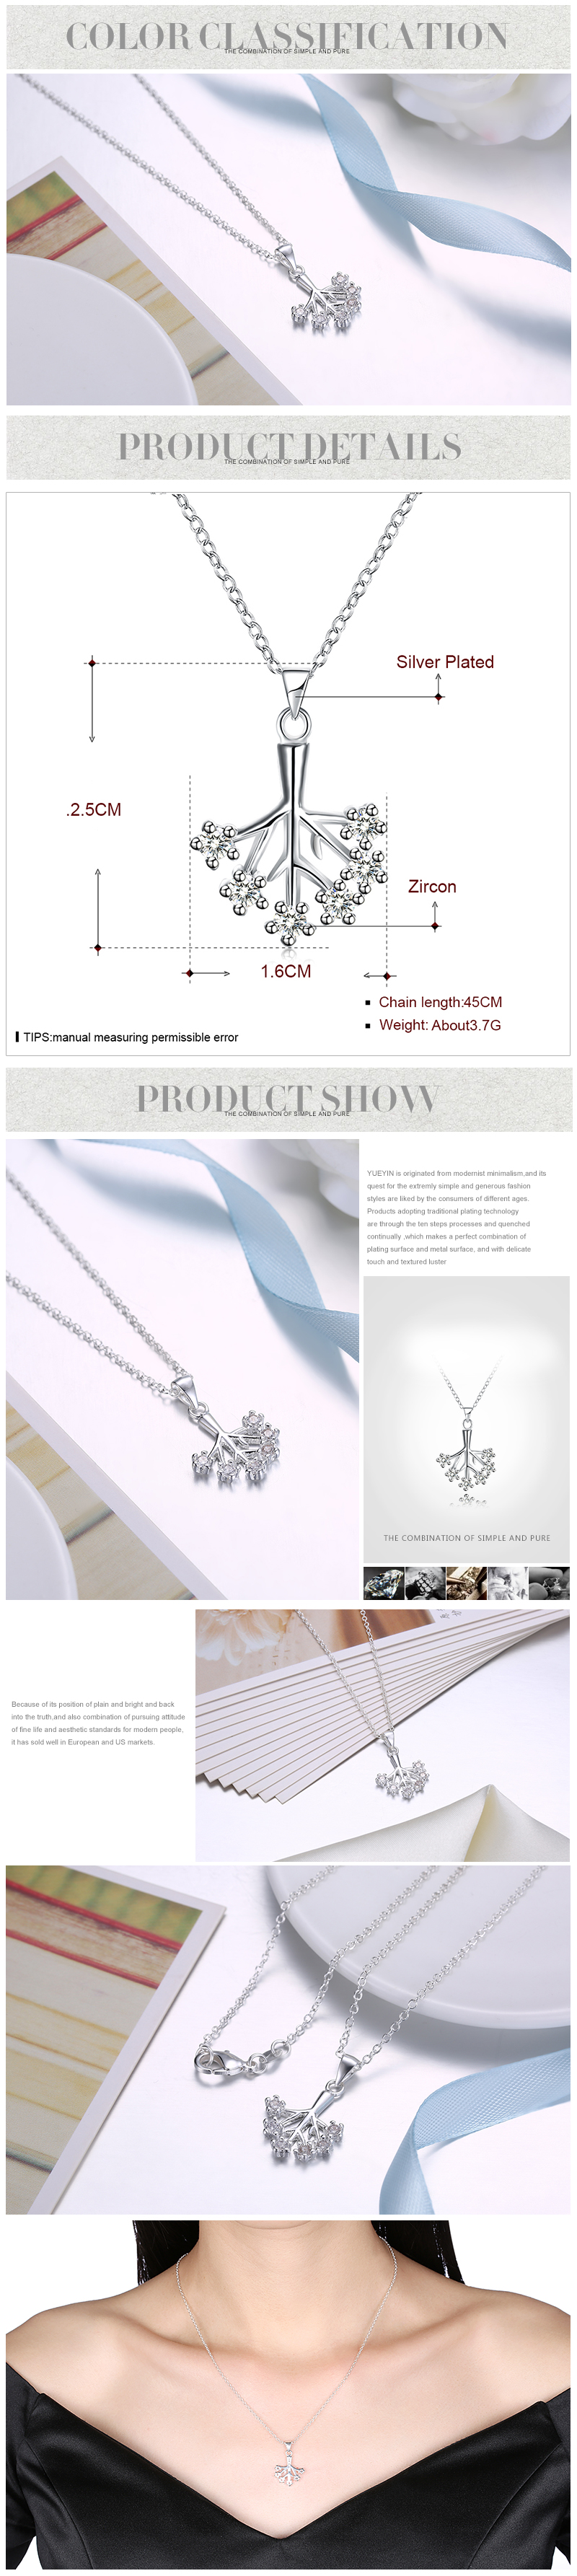 Necklaces NHKL12268